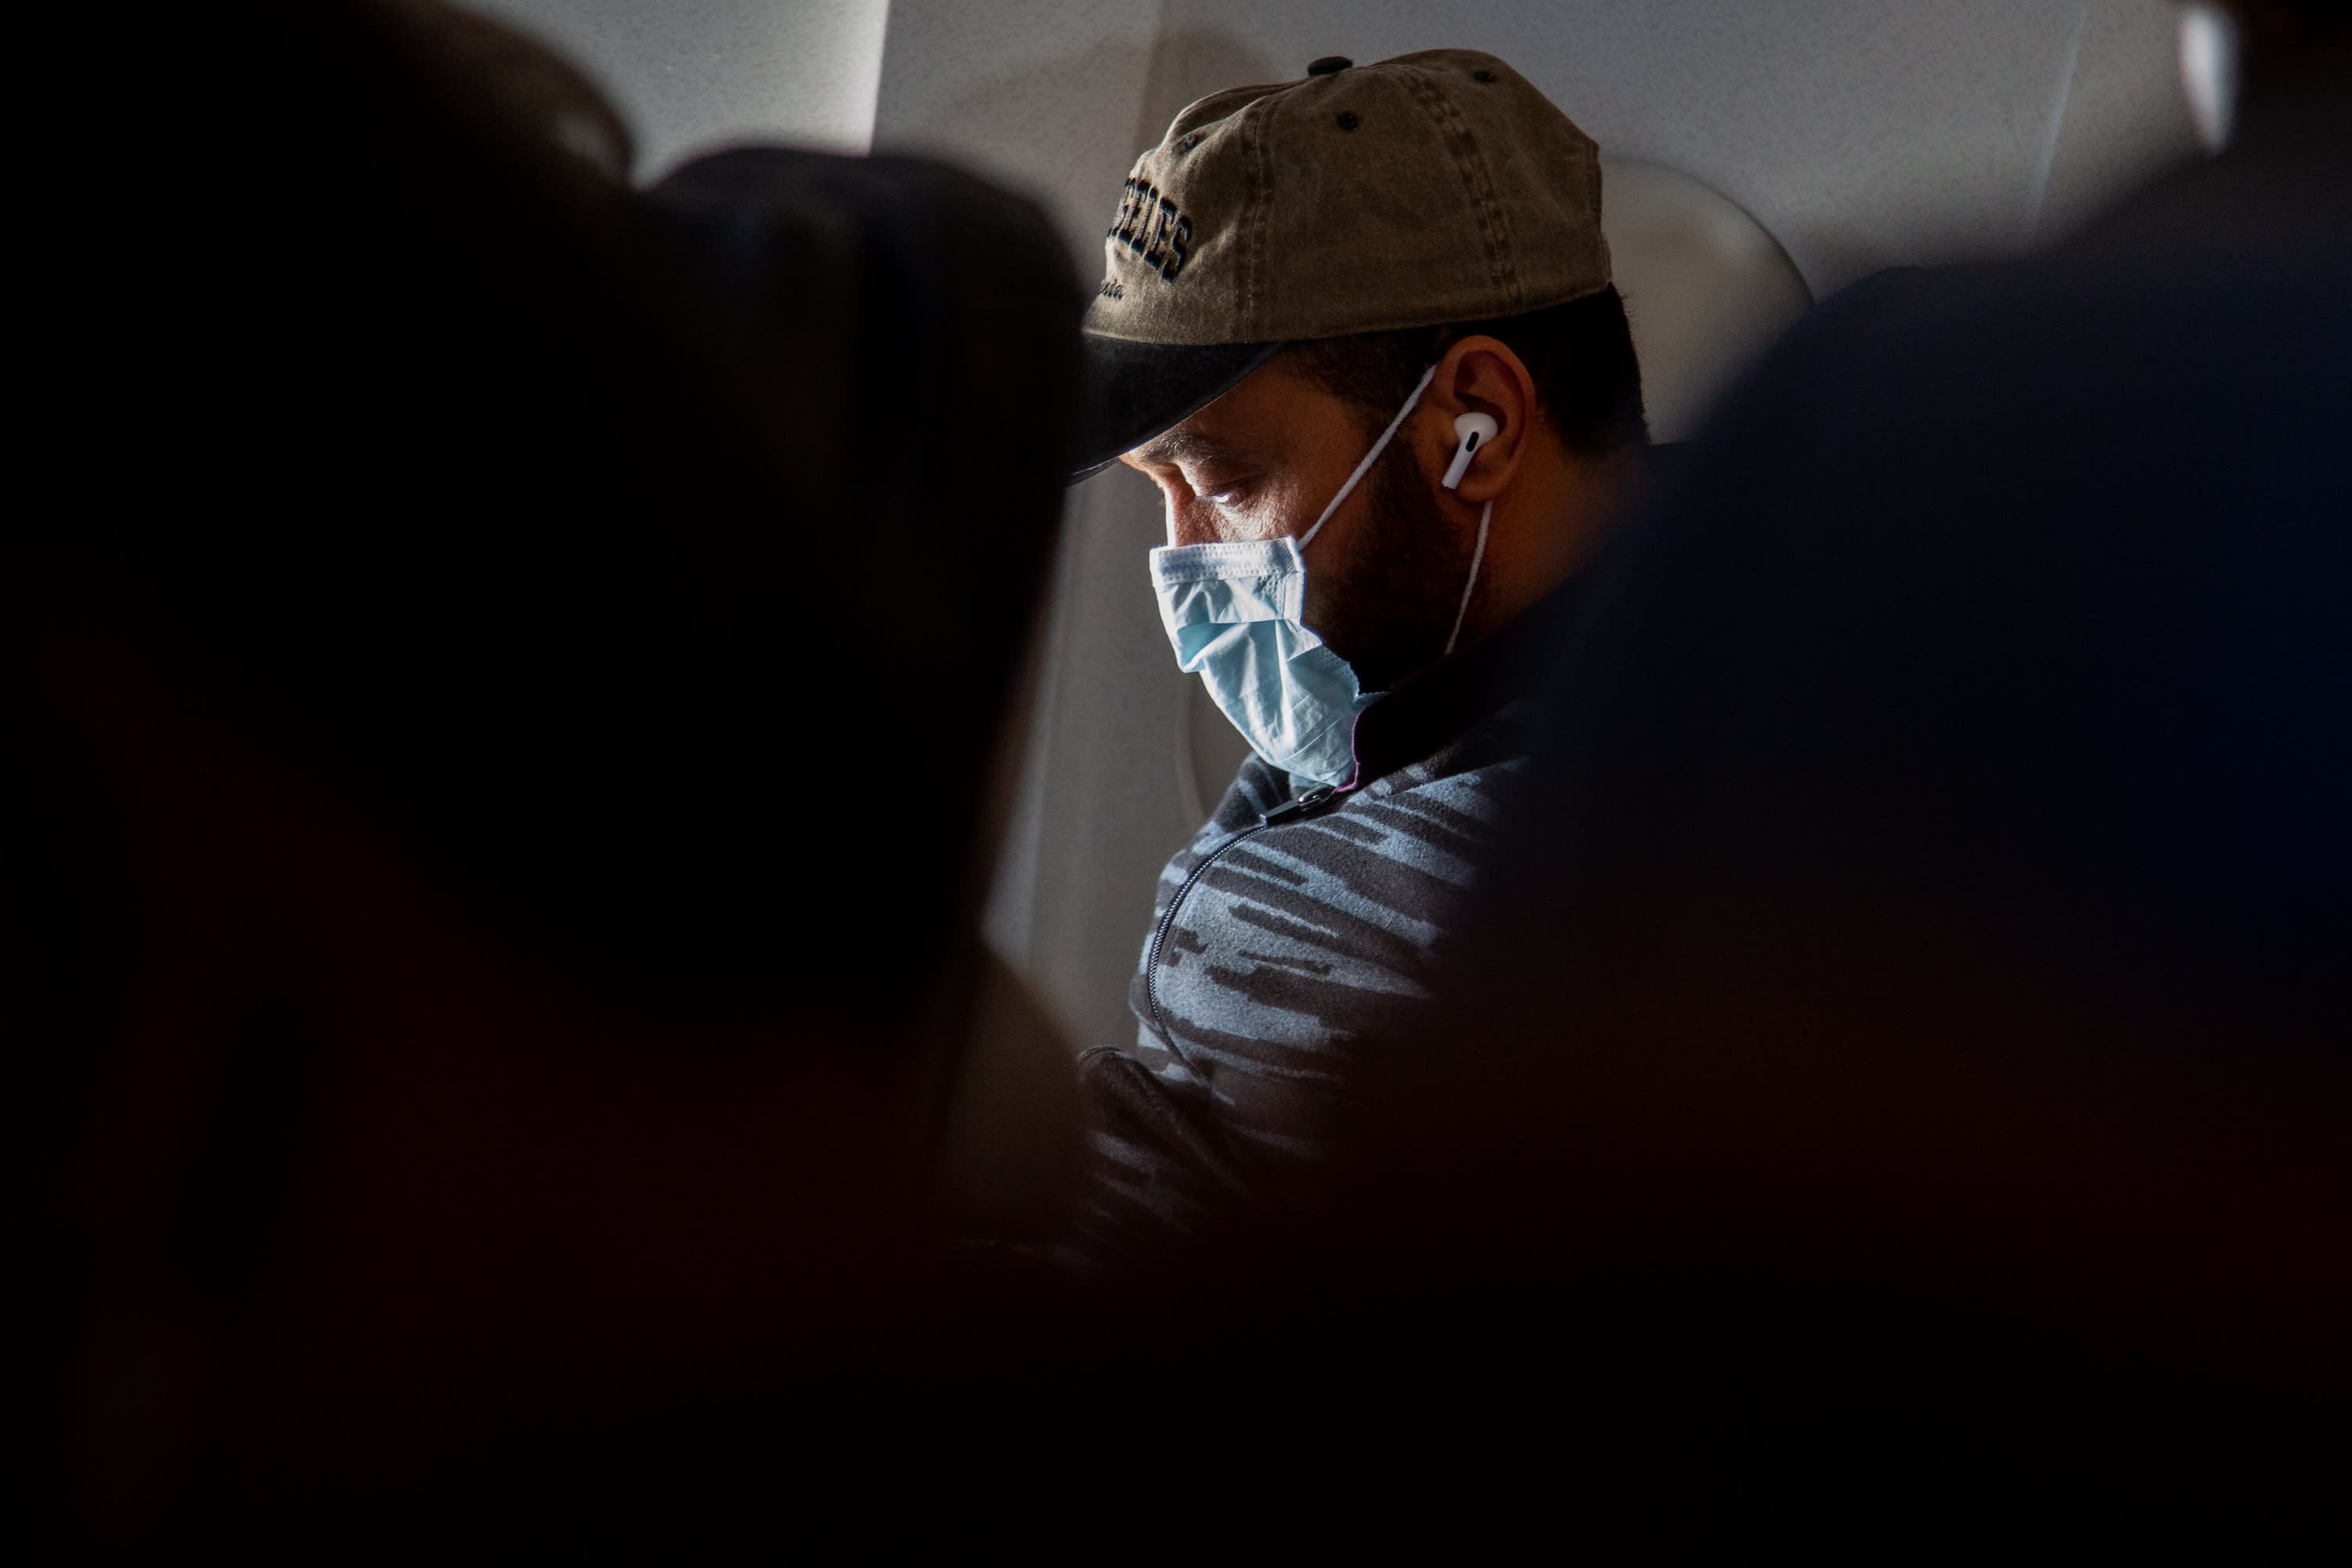 New York, New Jersey, Connecticut impose 14-day quarantine on travelers from Covid-19 hotspots